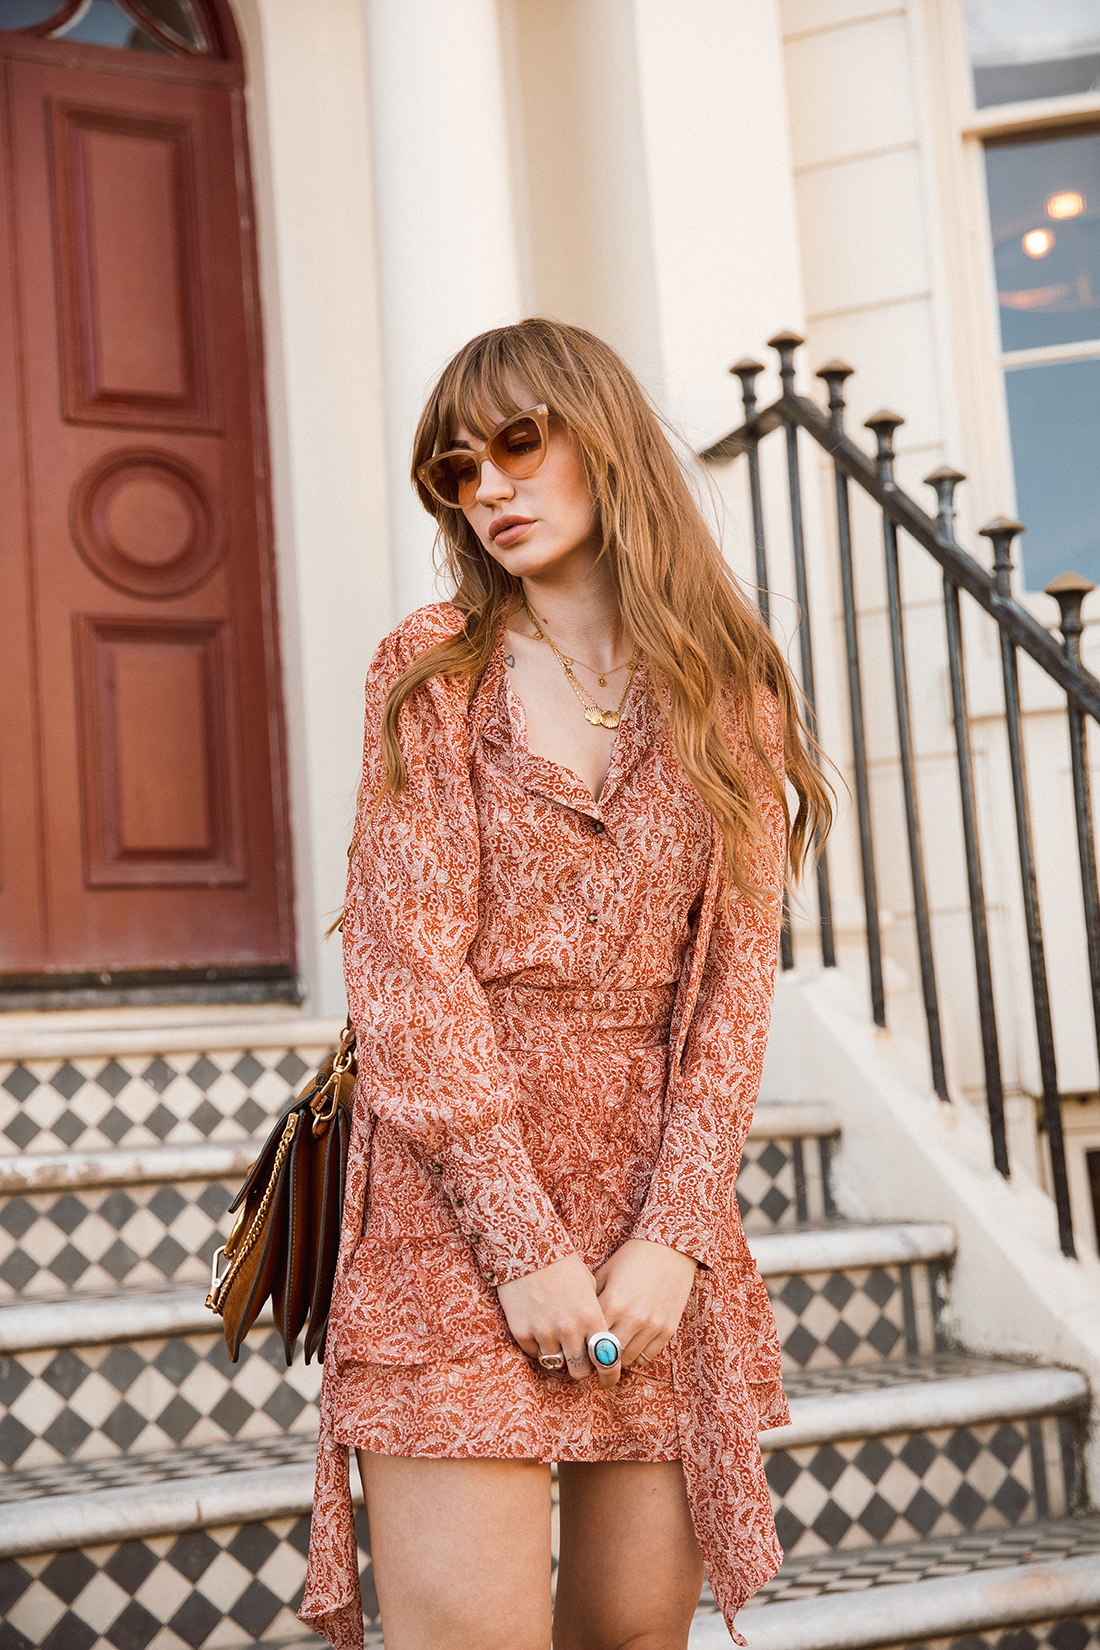 Blogger fashion photoshoot of Sara Waiste in 70s style by London photographer Ailera Stone